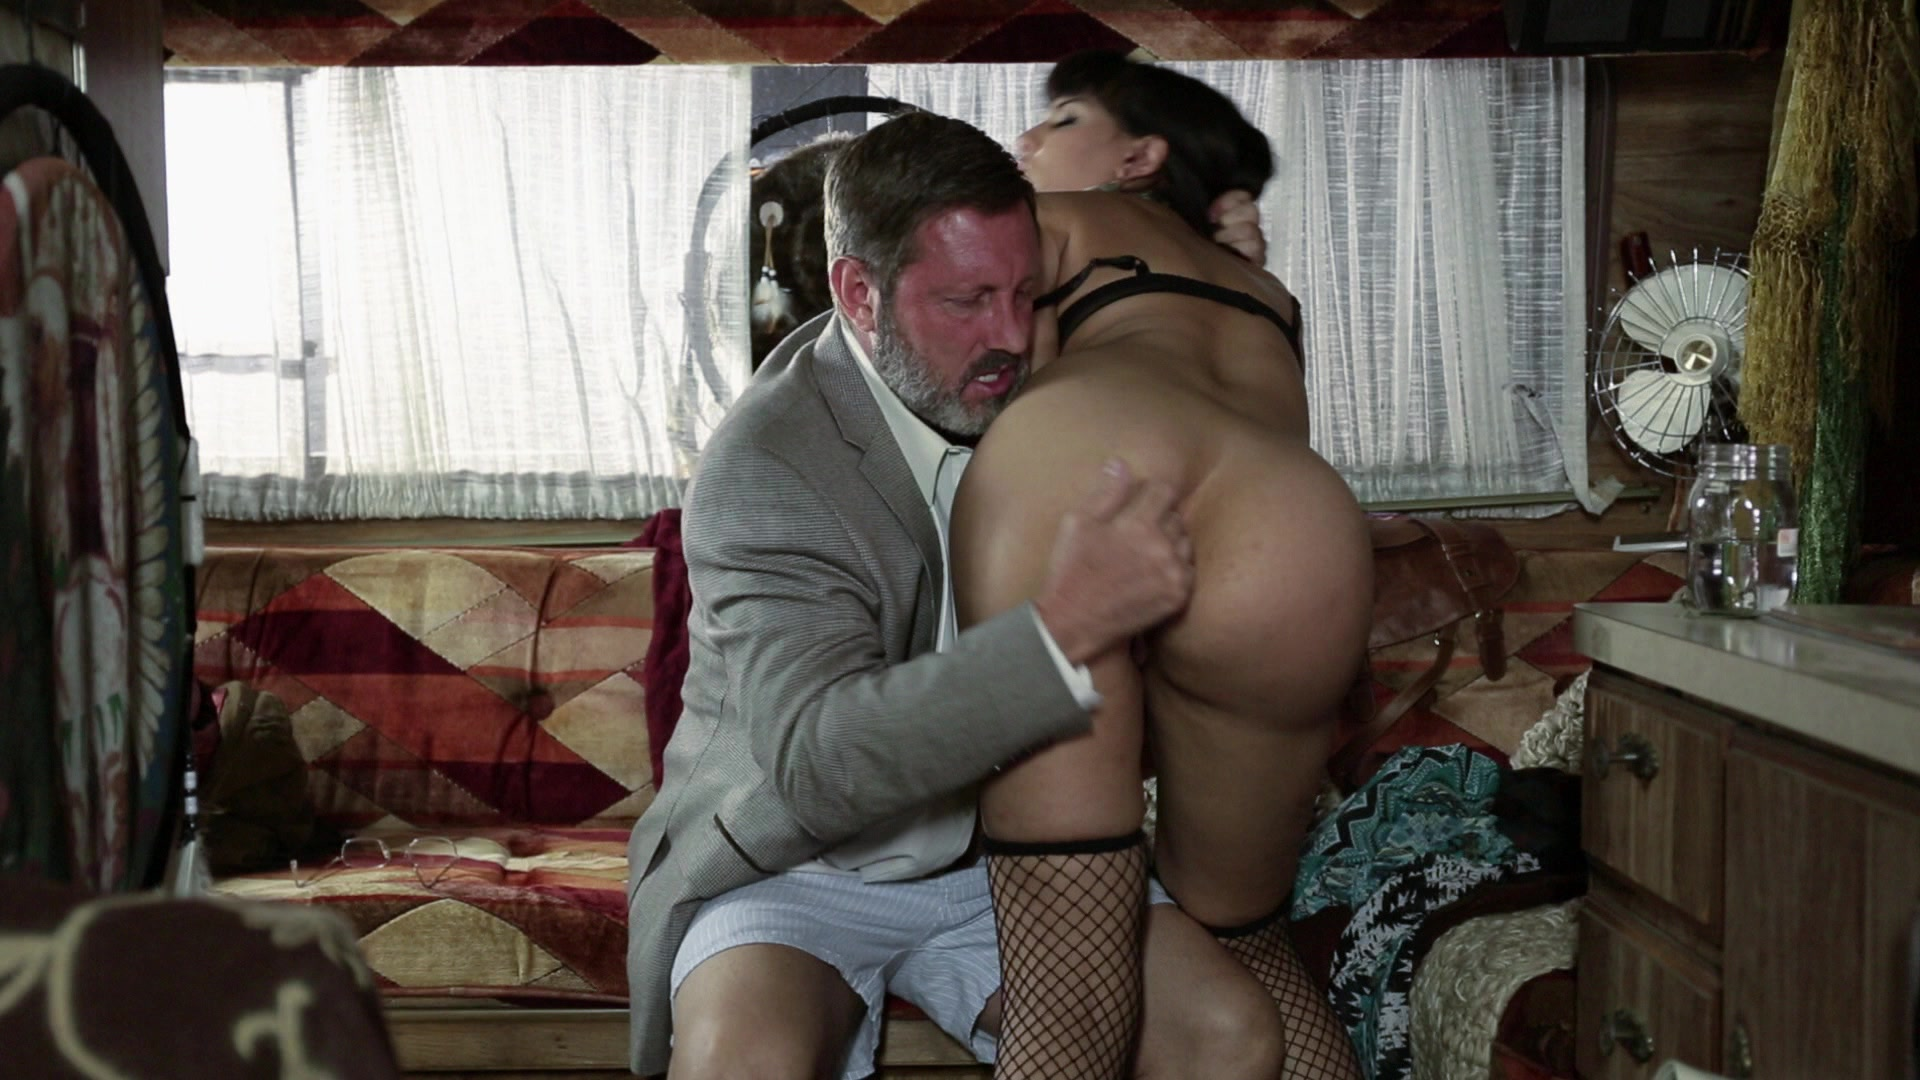 Scene with Brad Armstrong and Mercedes Carrera - image 12 out of 20